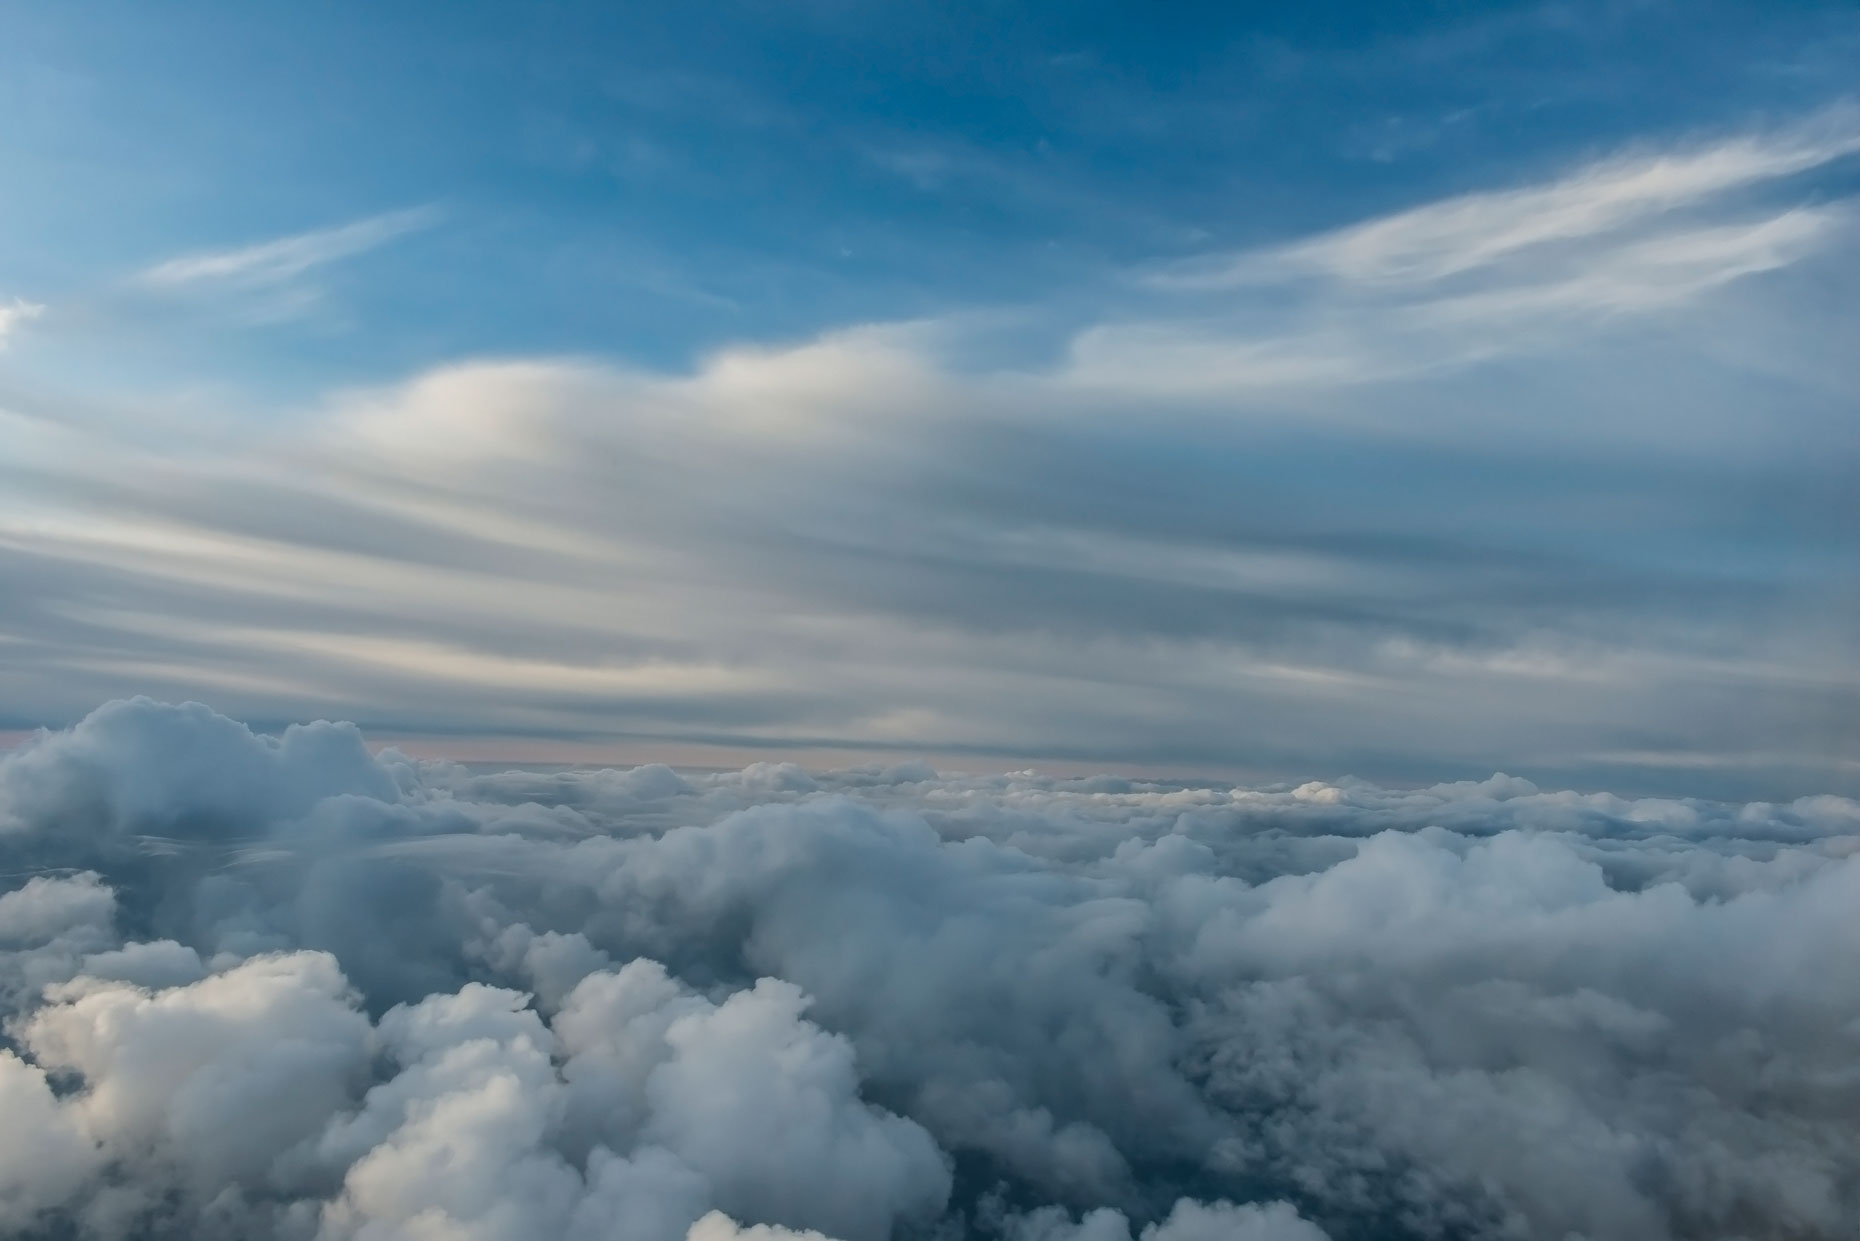 Landscape Photography - Clouds over the Pacific Ocean